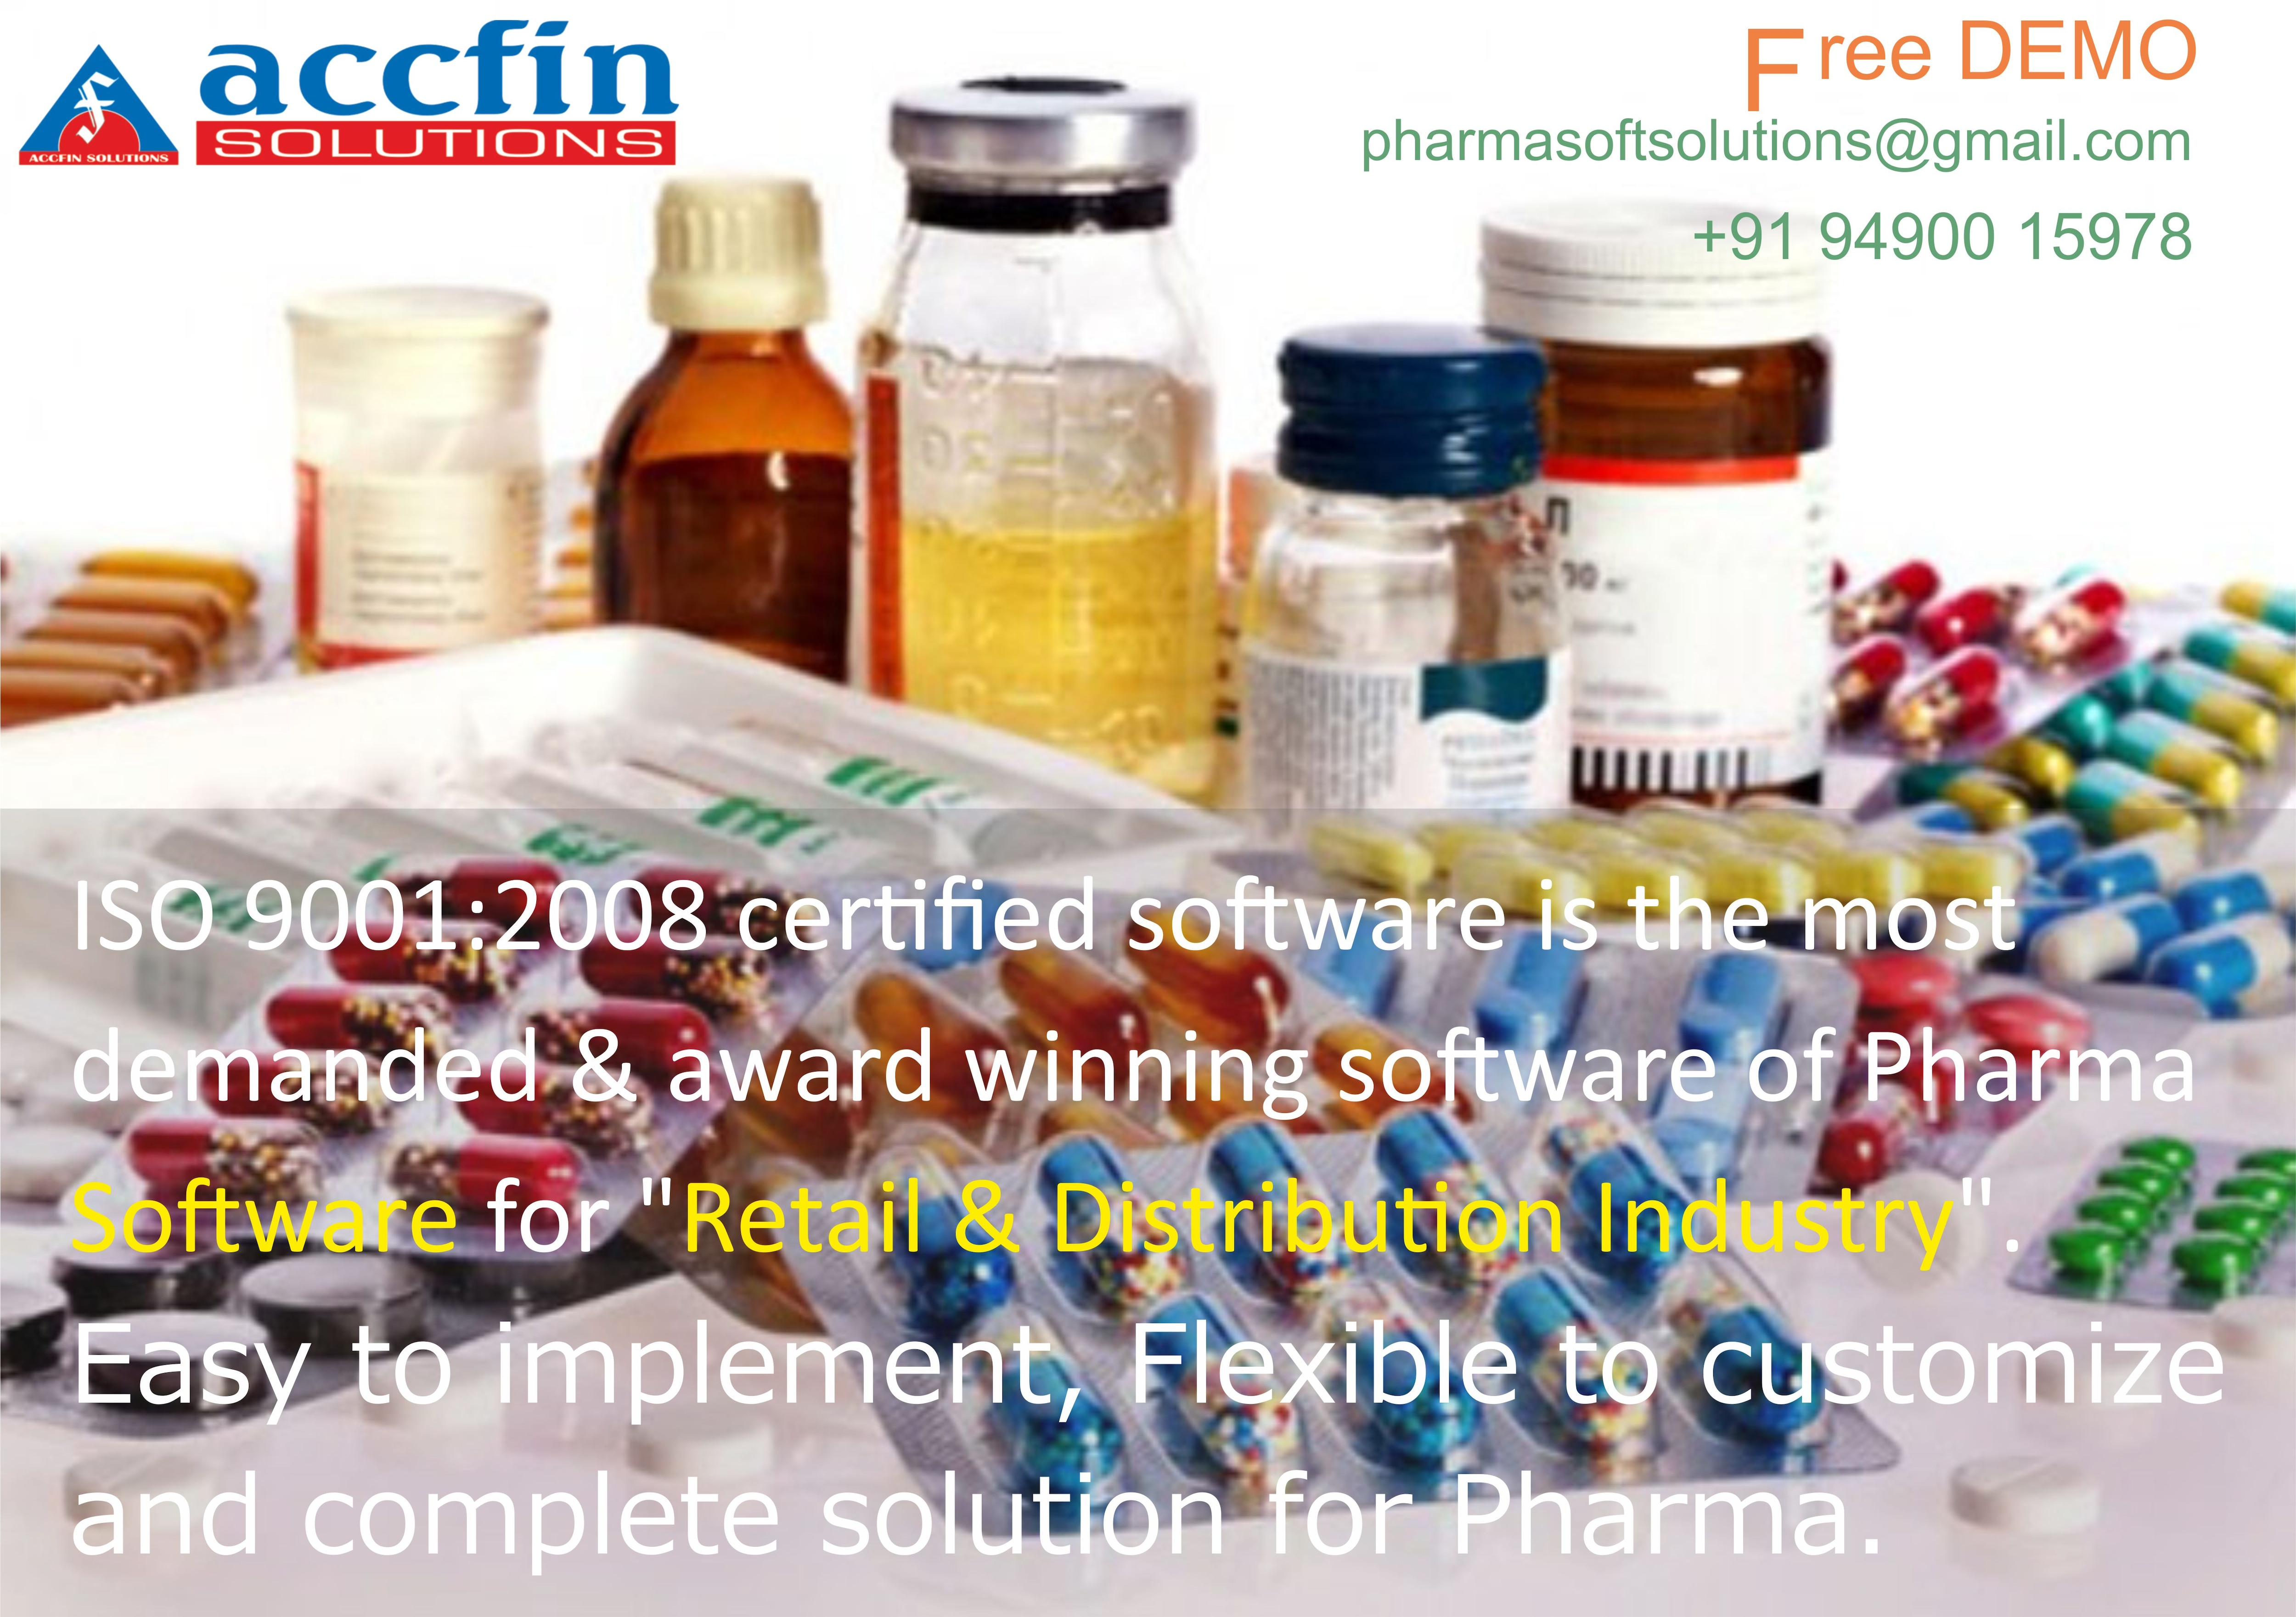 Pharma Software An ISO 9001:2008 certified software is the most demanded & award winning Pharma Software for